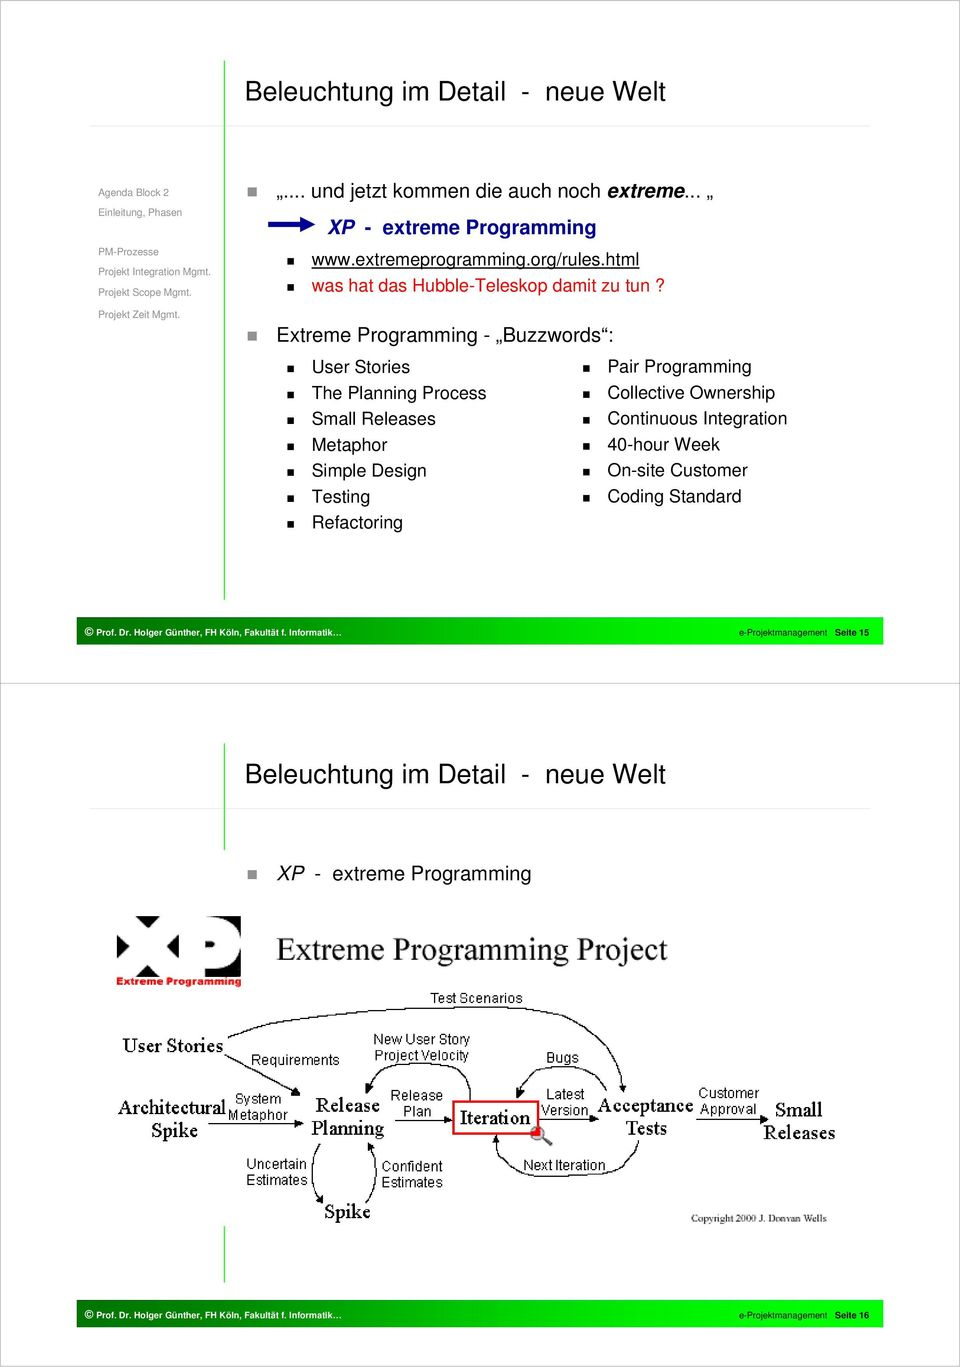 Extreme Programming - Buzzwords : User Stories The Planning Process Small Releases Metaphor Simple Design Testing Refactoring Pair